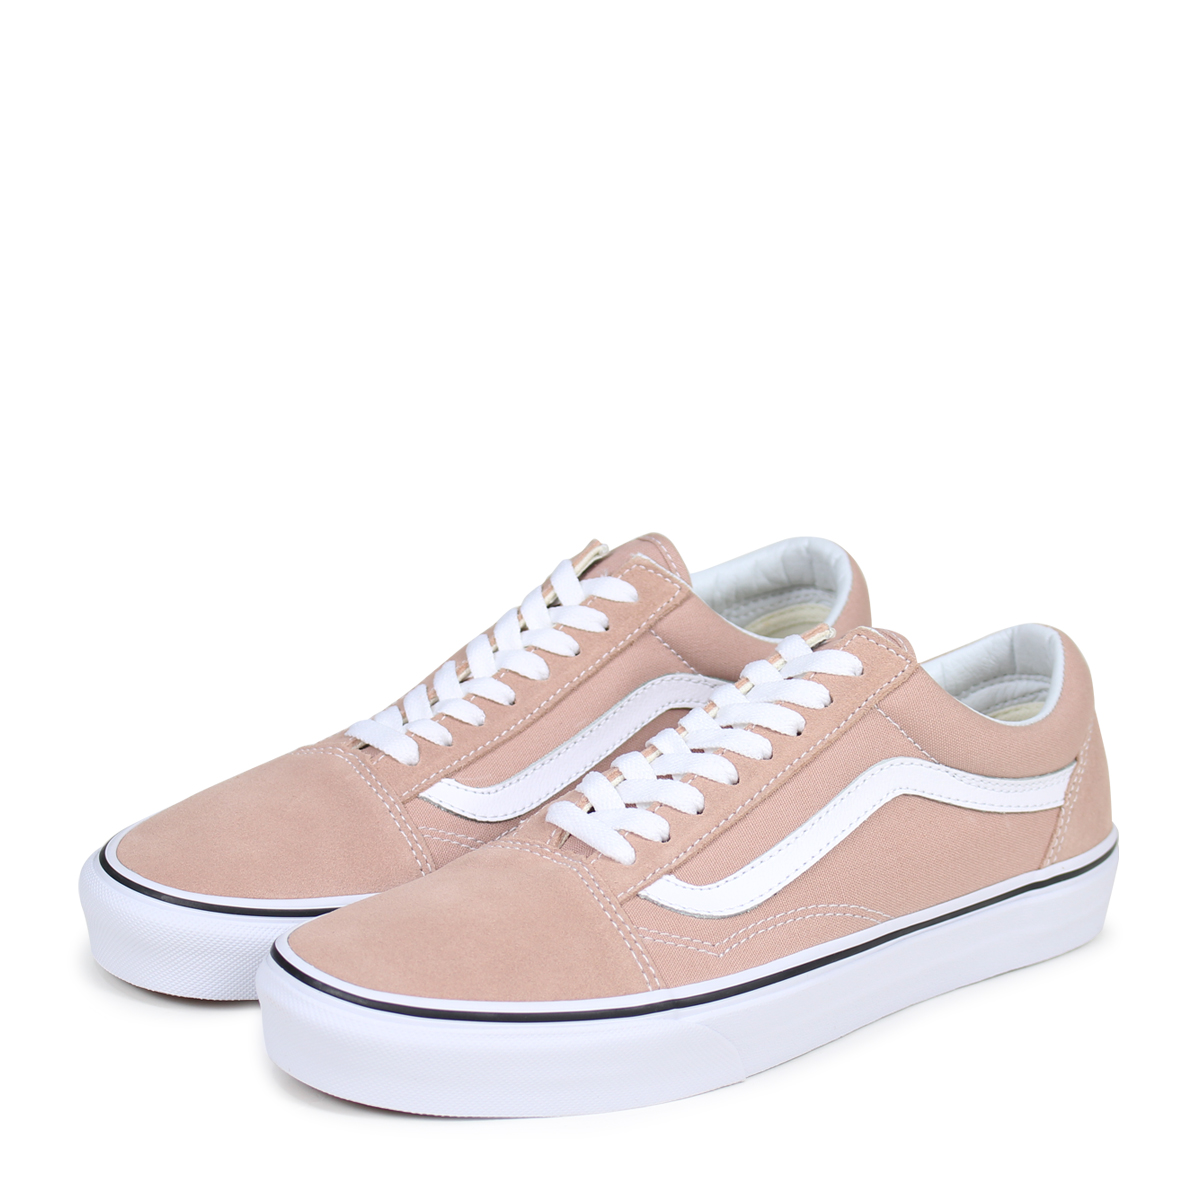 vans old skool pink